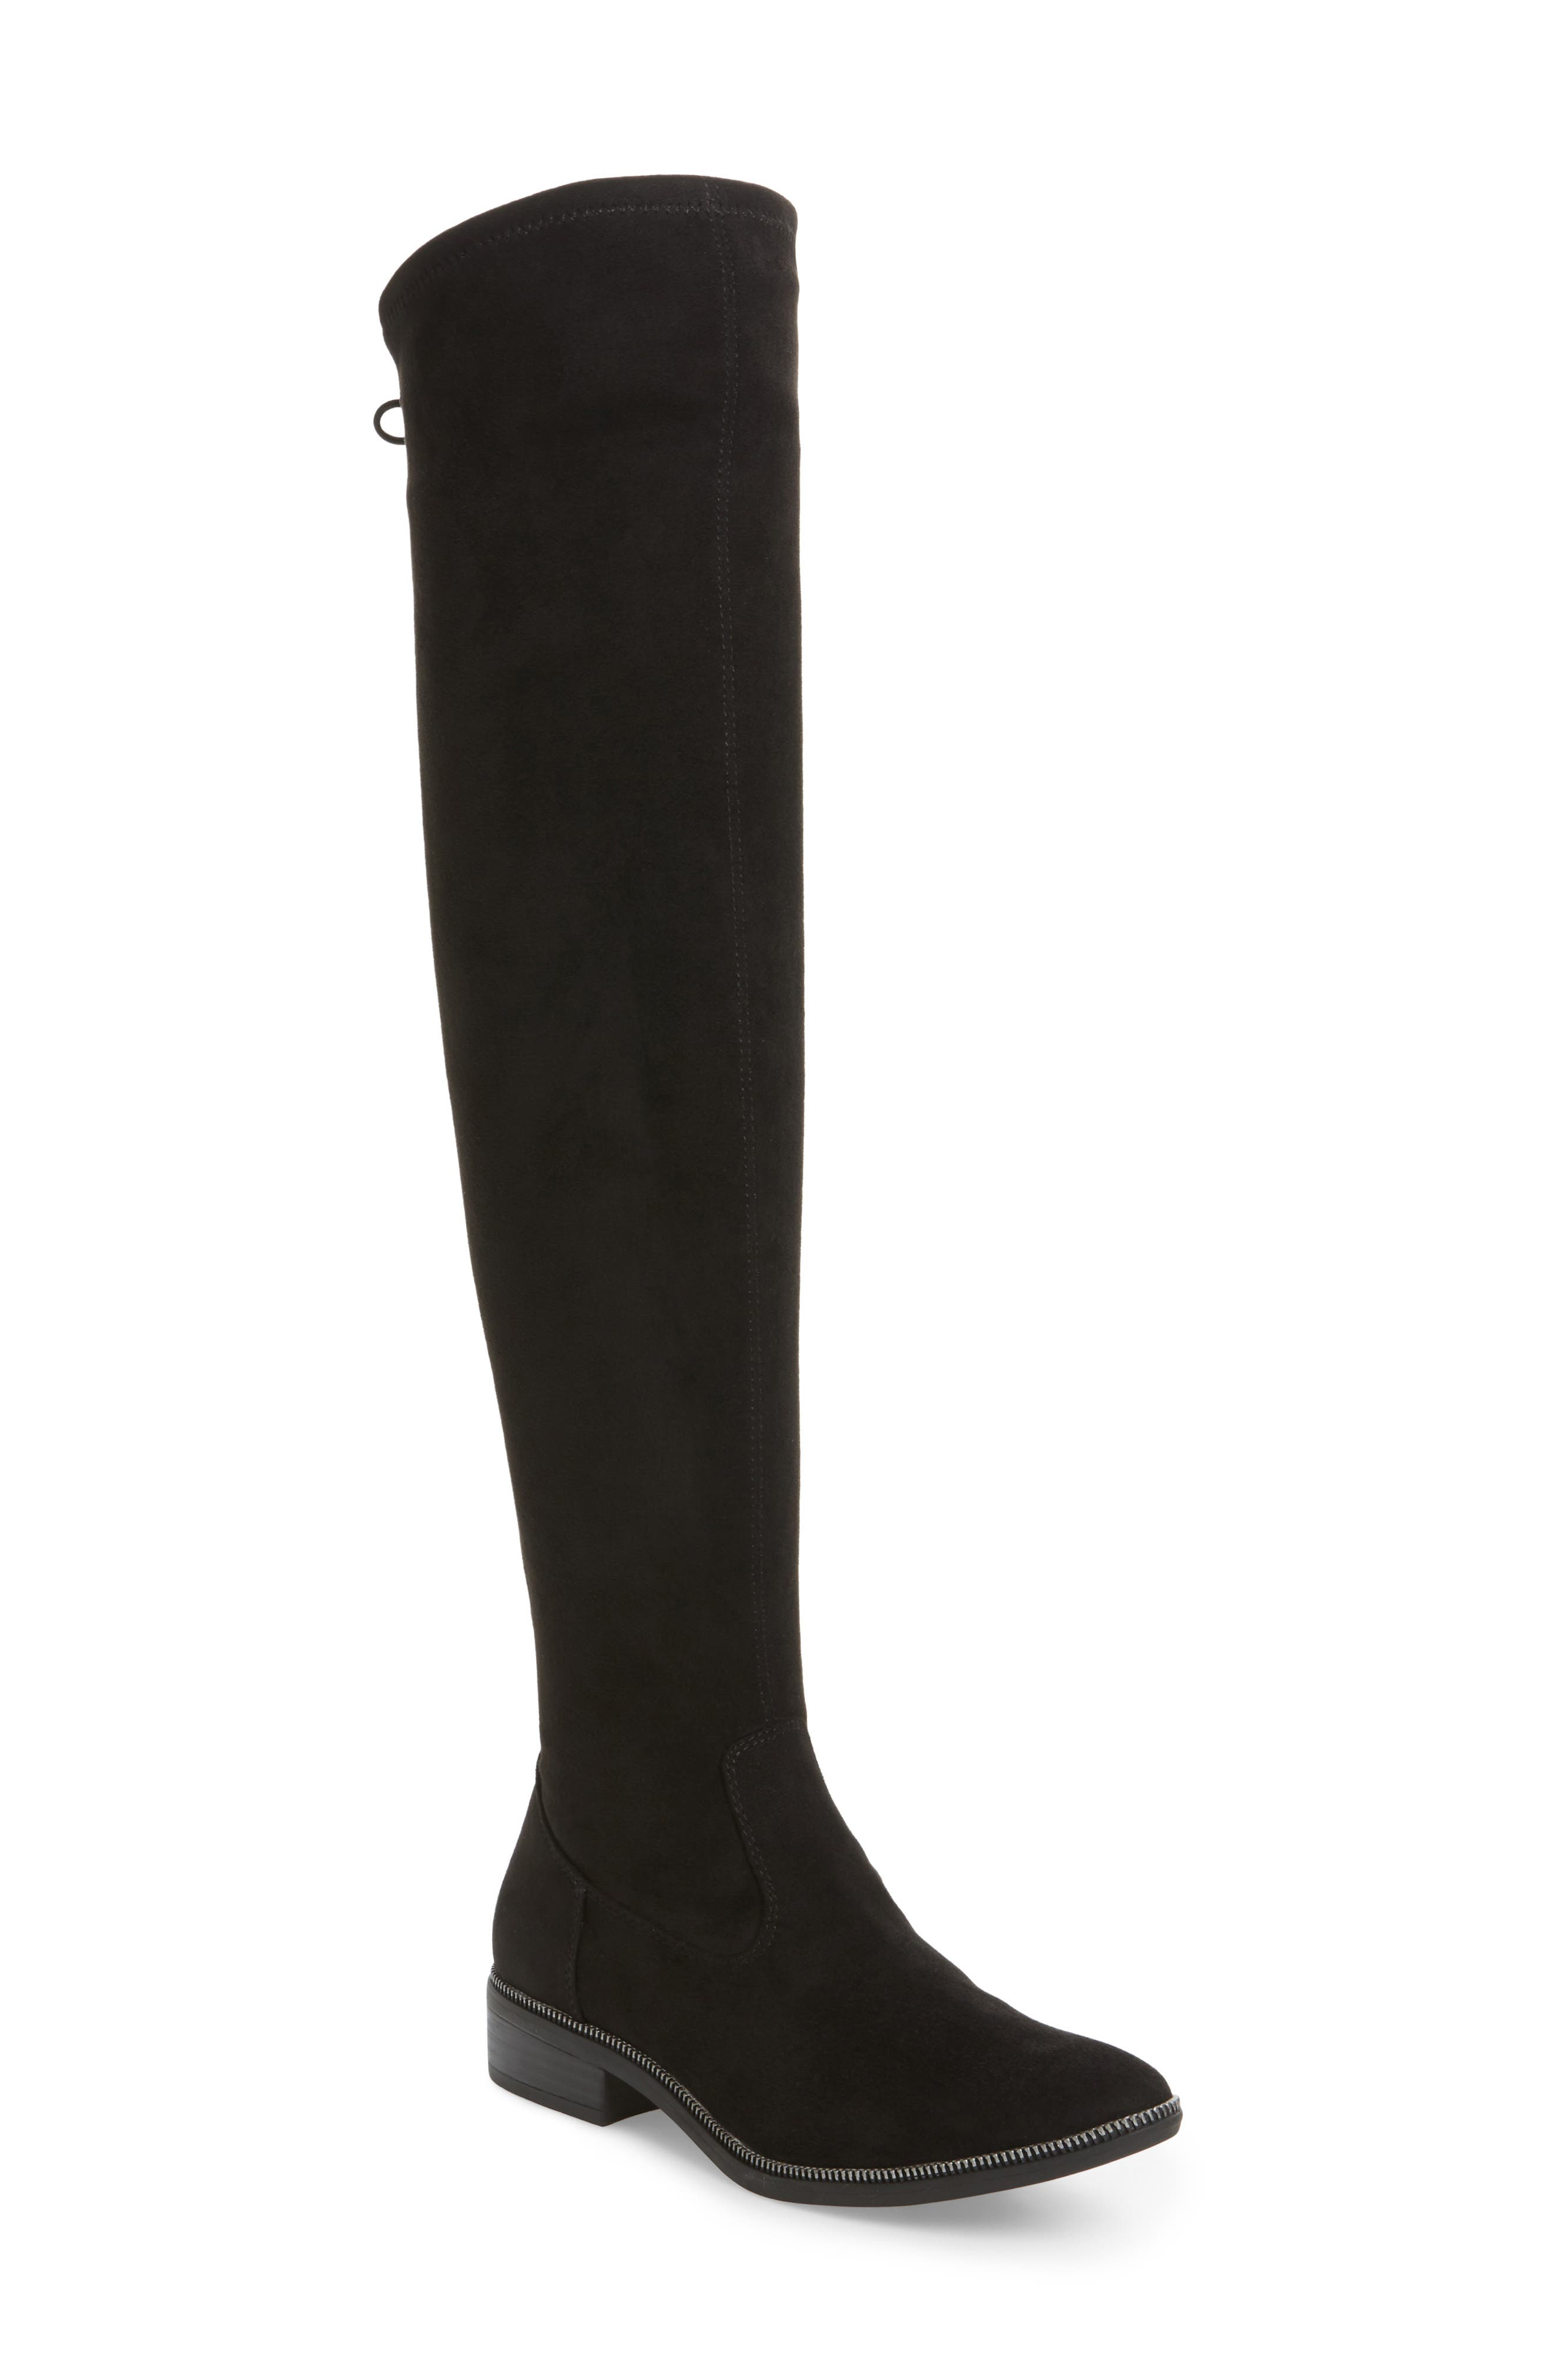 Phanie Over the Knee Stretch Boot,                             Main thumbnail 1, color,                             001